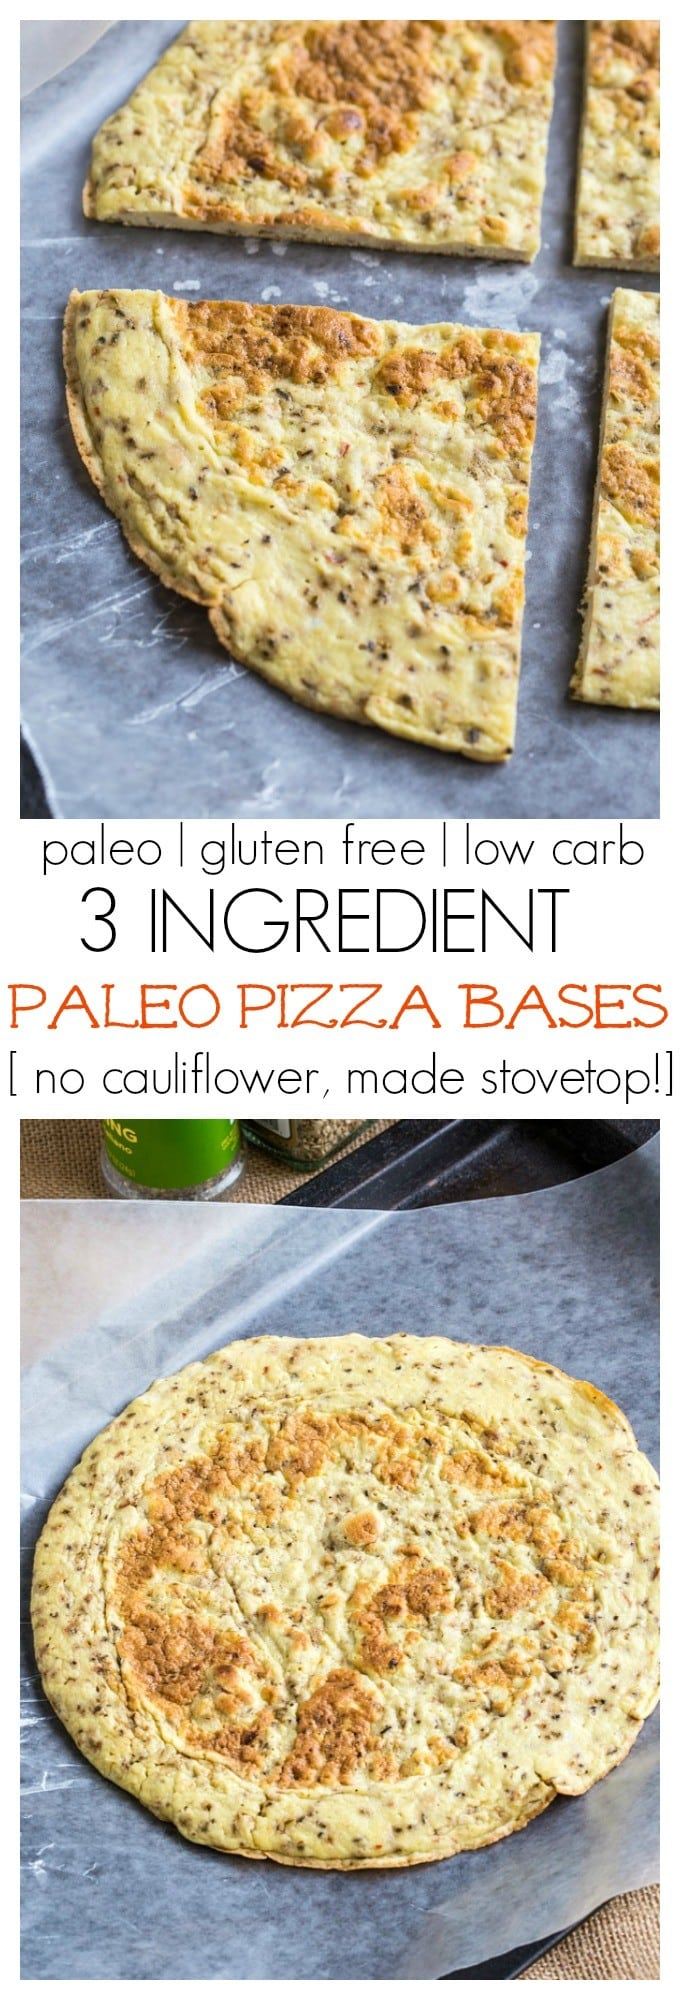 3 Zutaten Paleo Pizza Bases  – Keto recipes